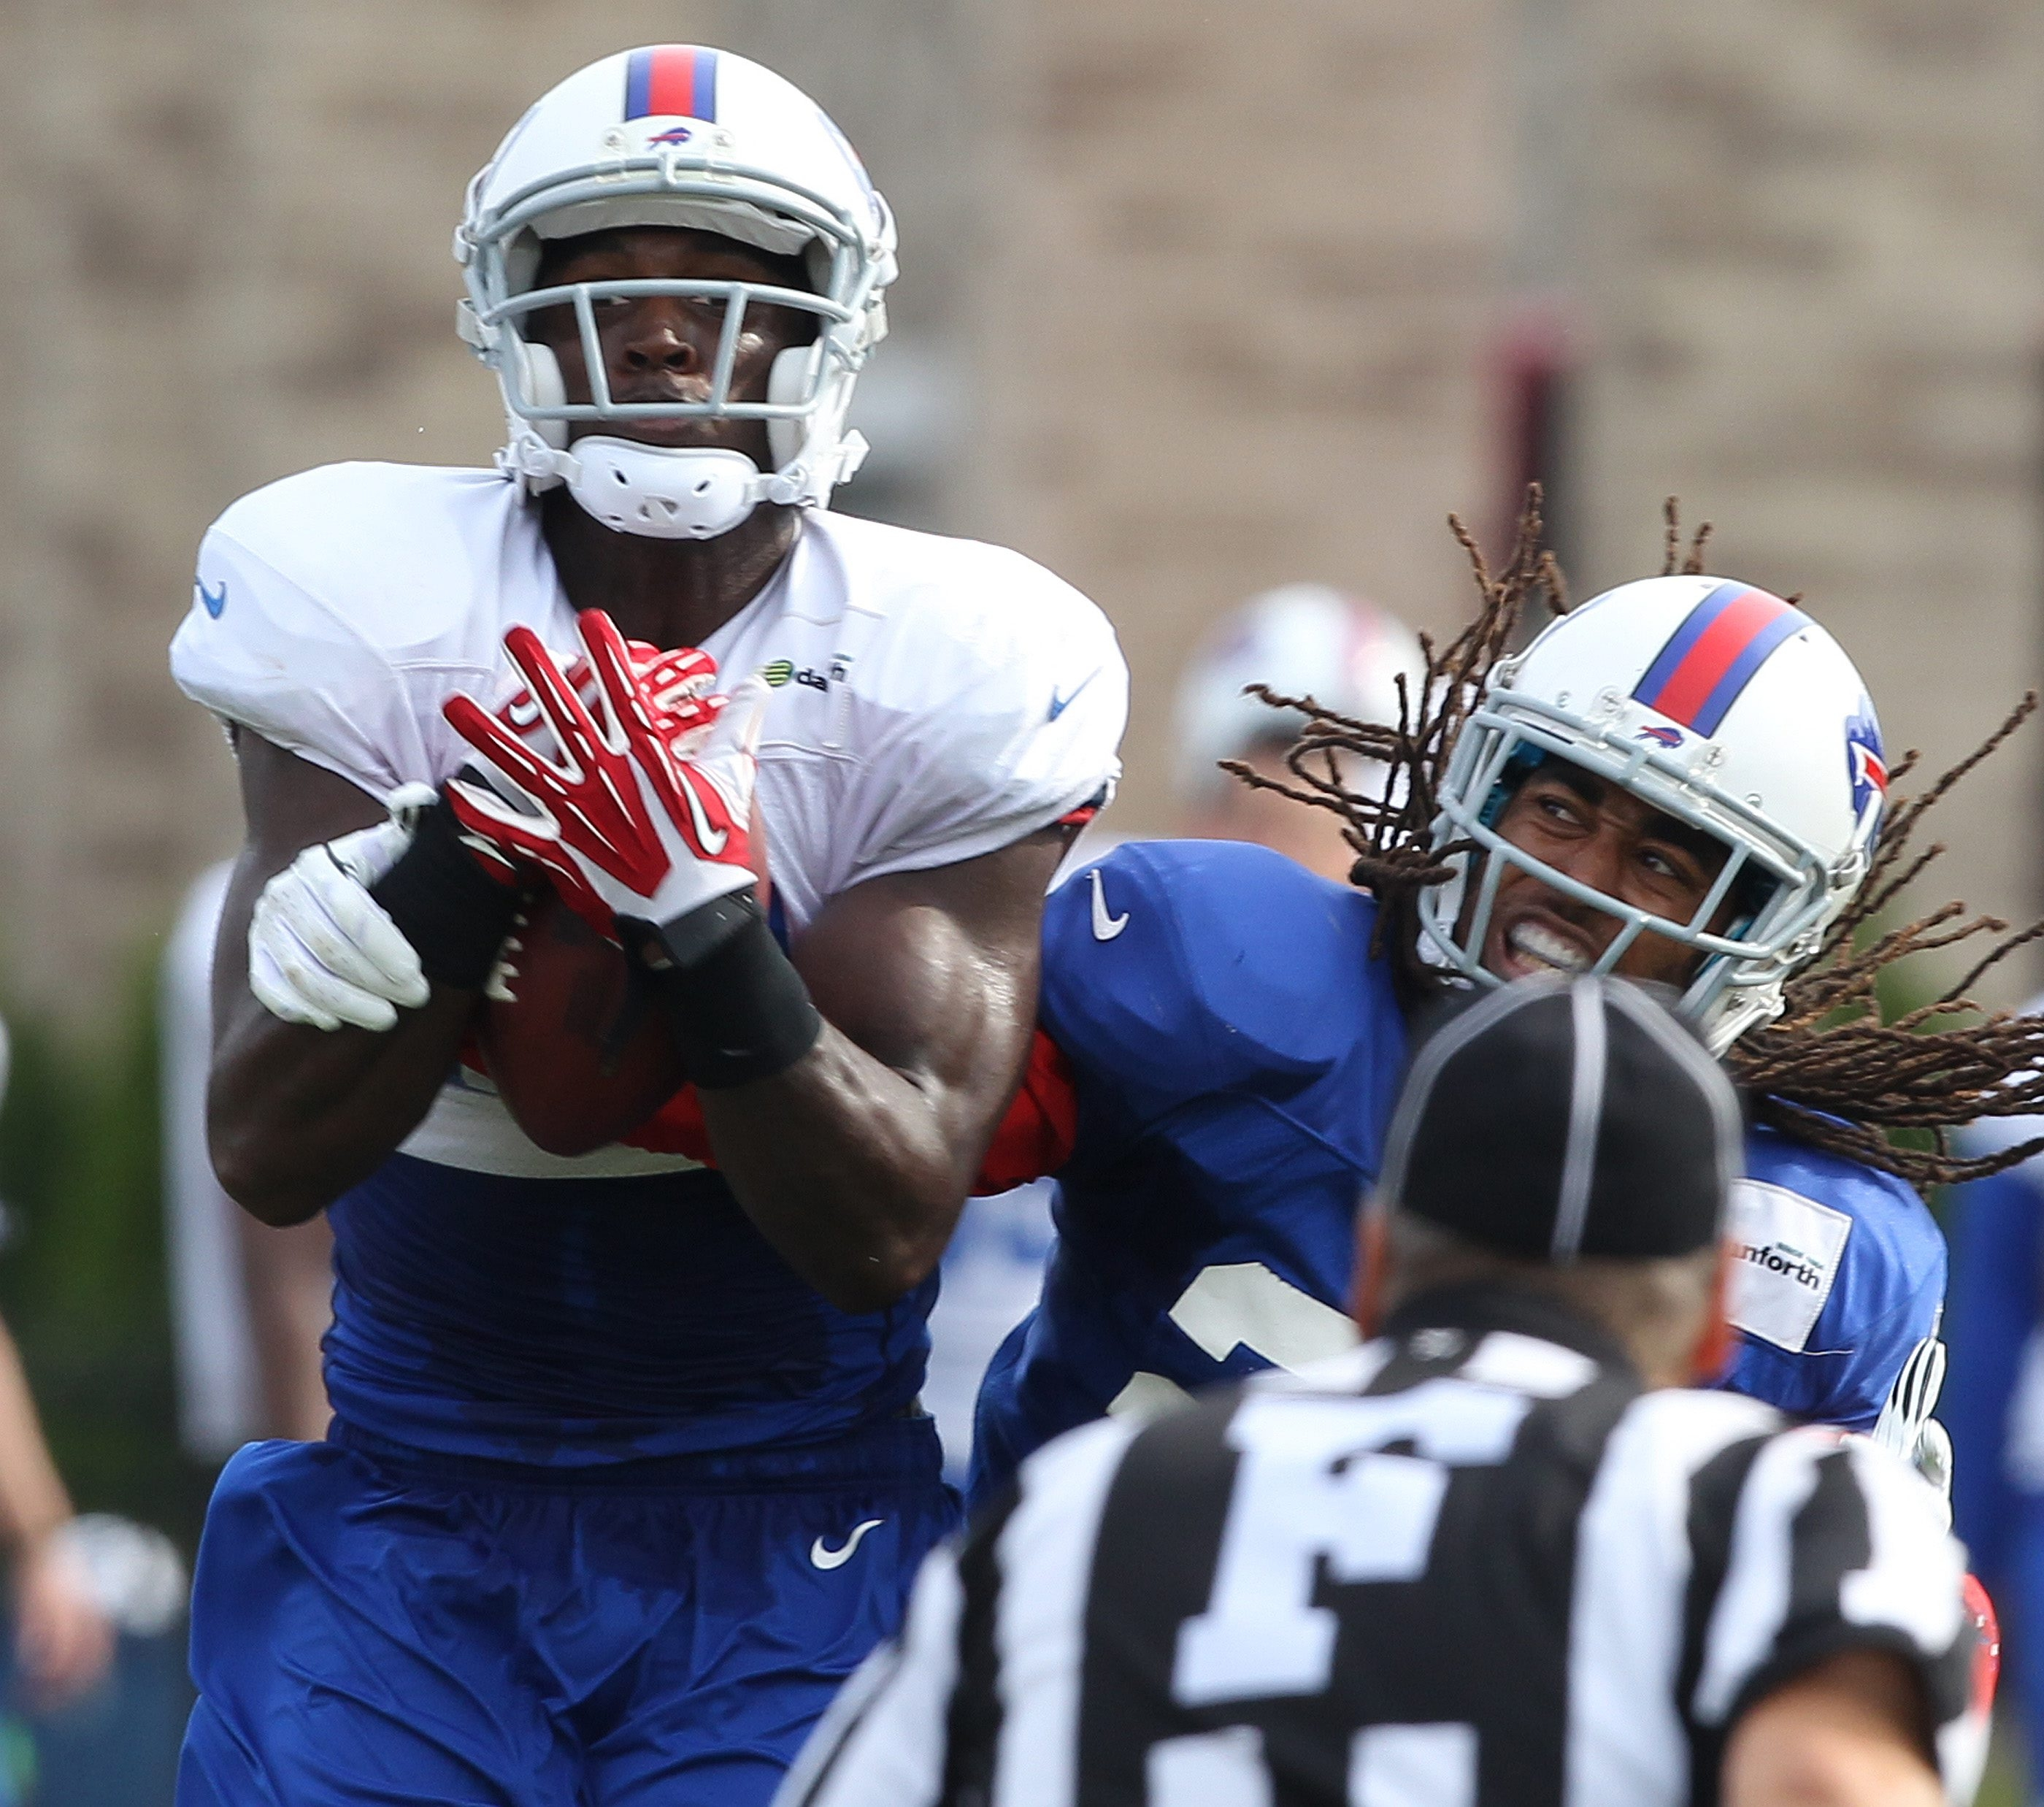 Receiver Marcus Easley pulls in a pass despite the effort of cornerback Stephon Gilmore.